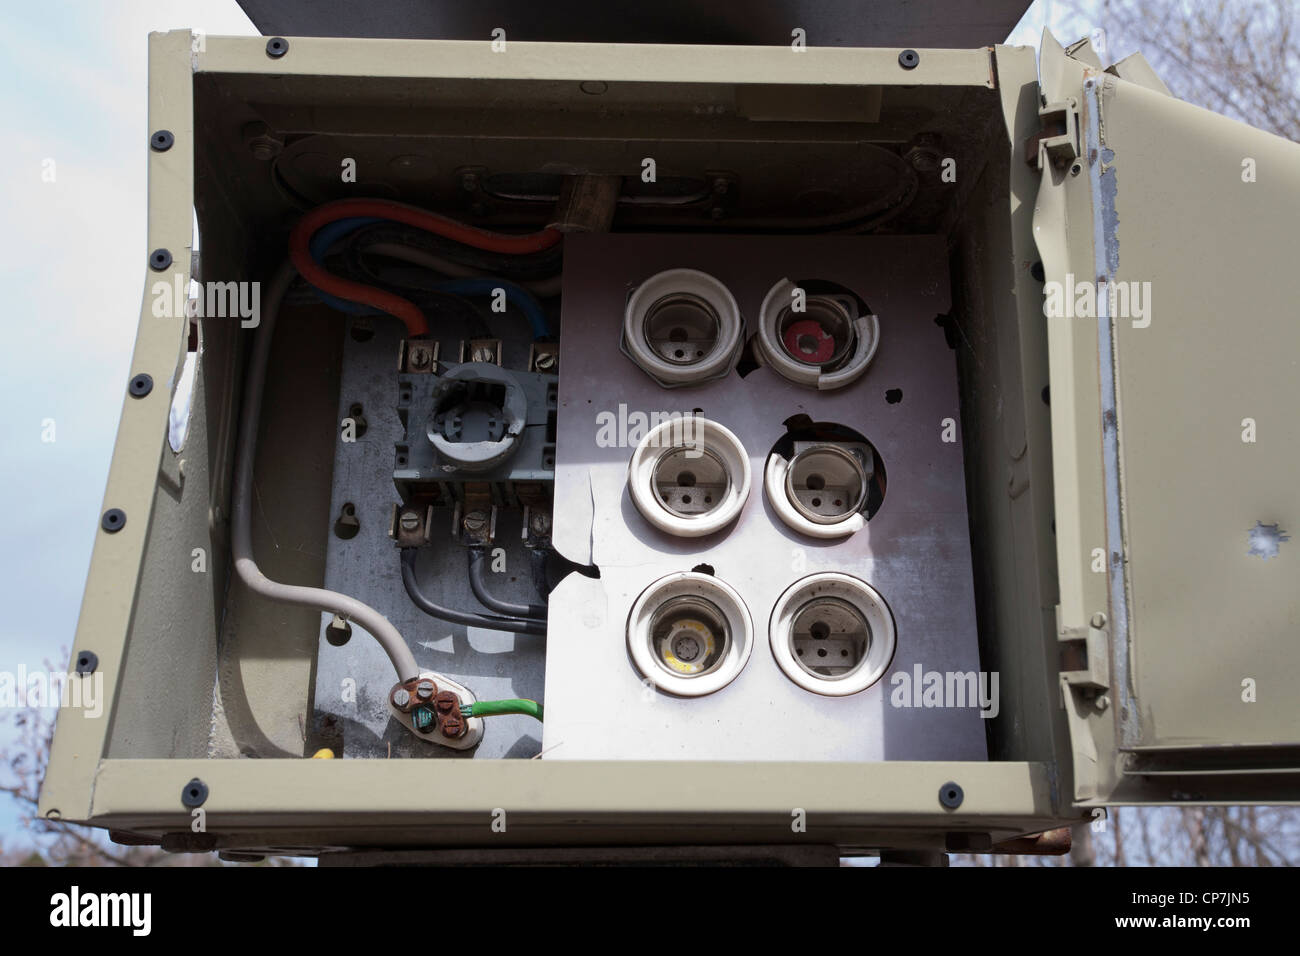 fuse box home stock photos fuse box home stock images alamy old empty fuse box stock image